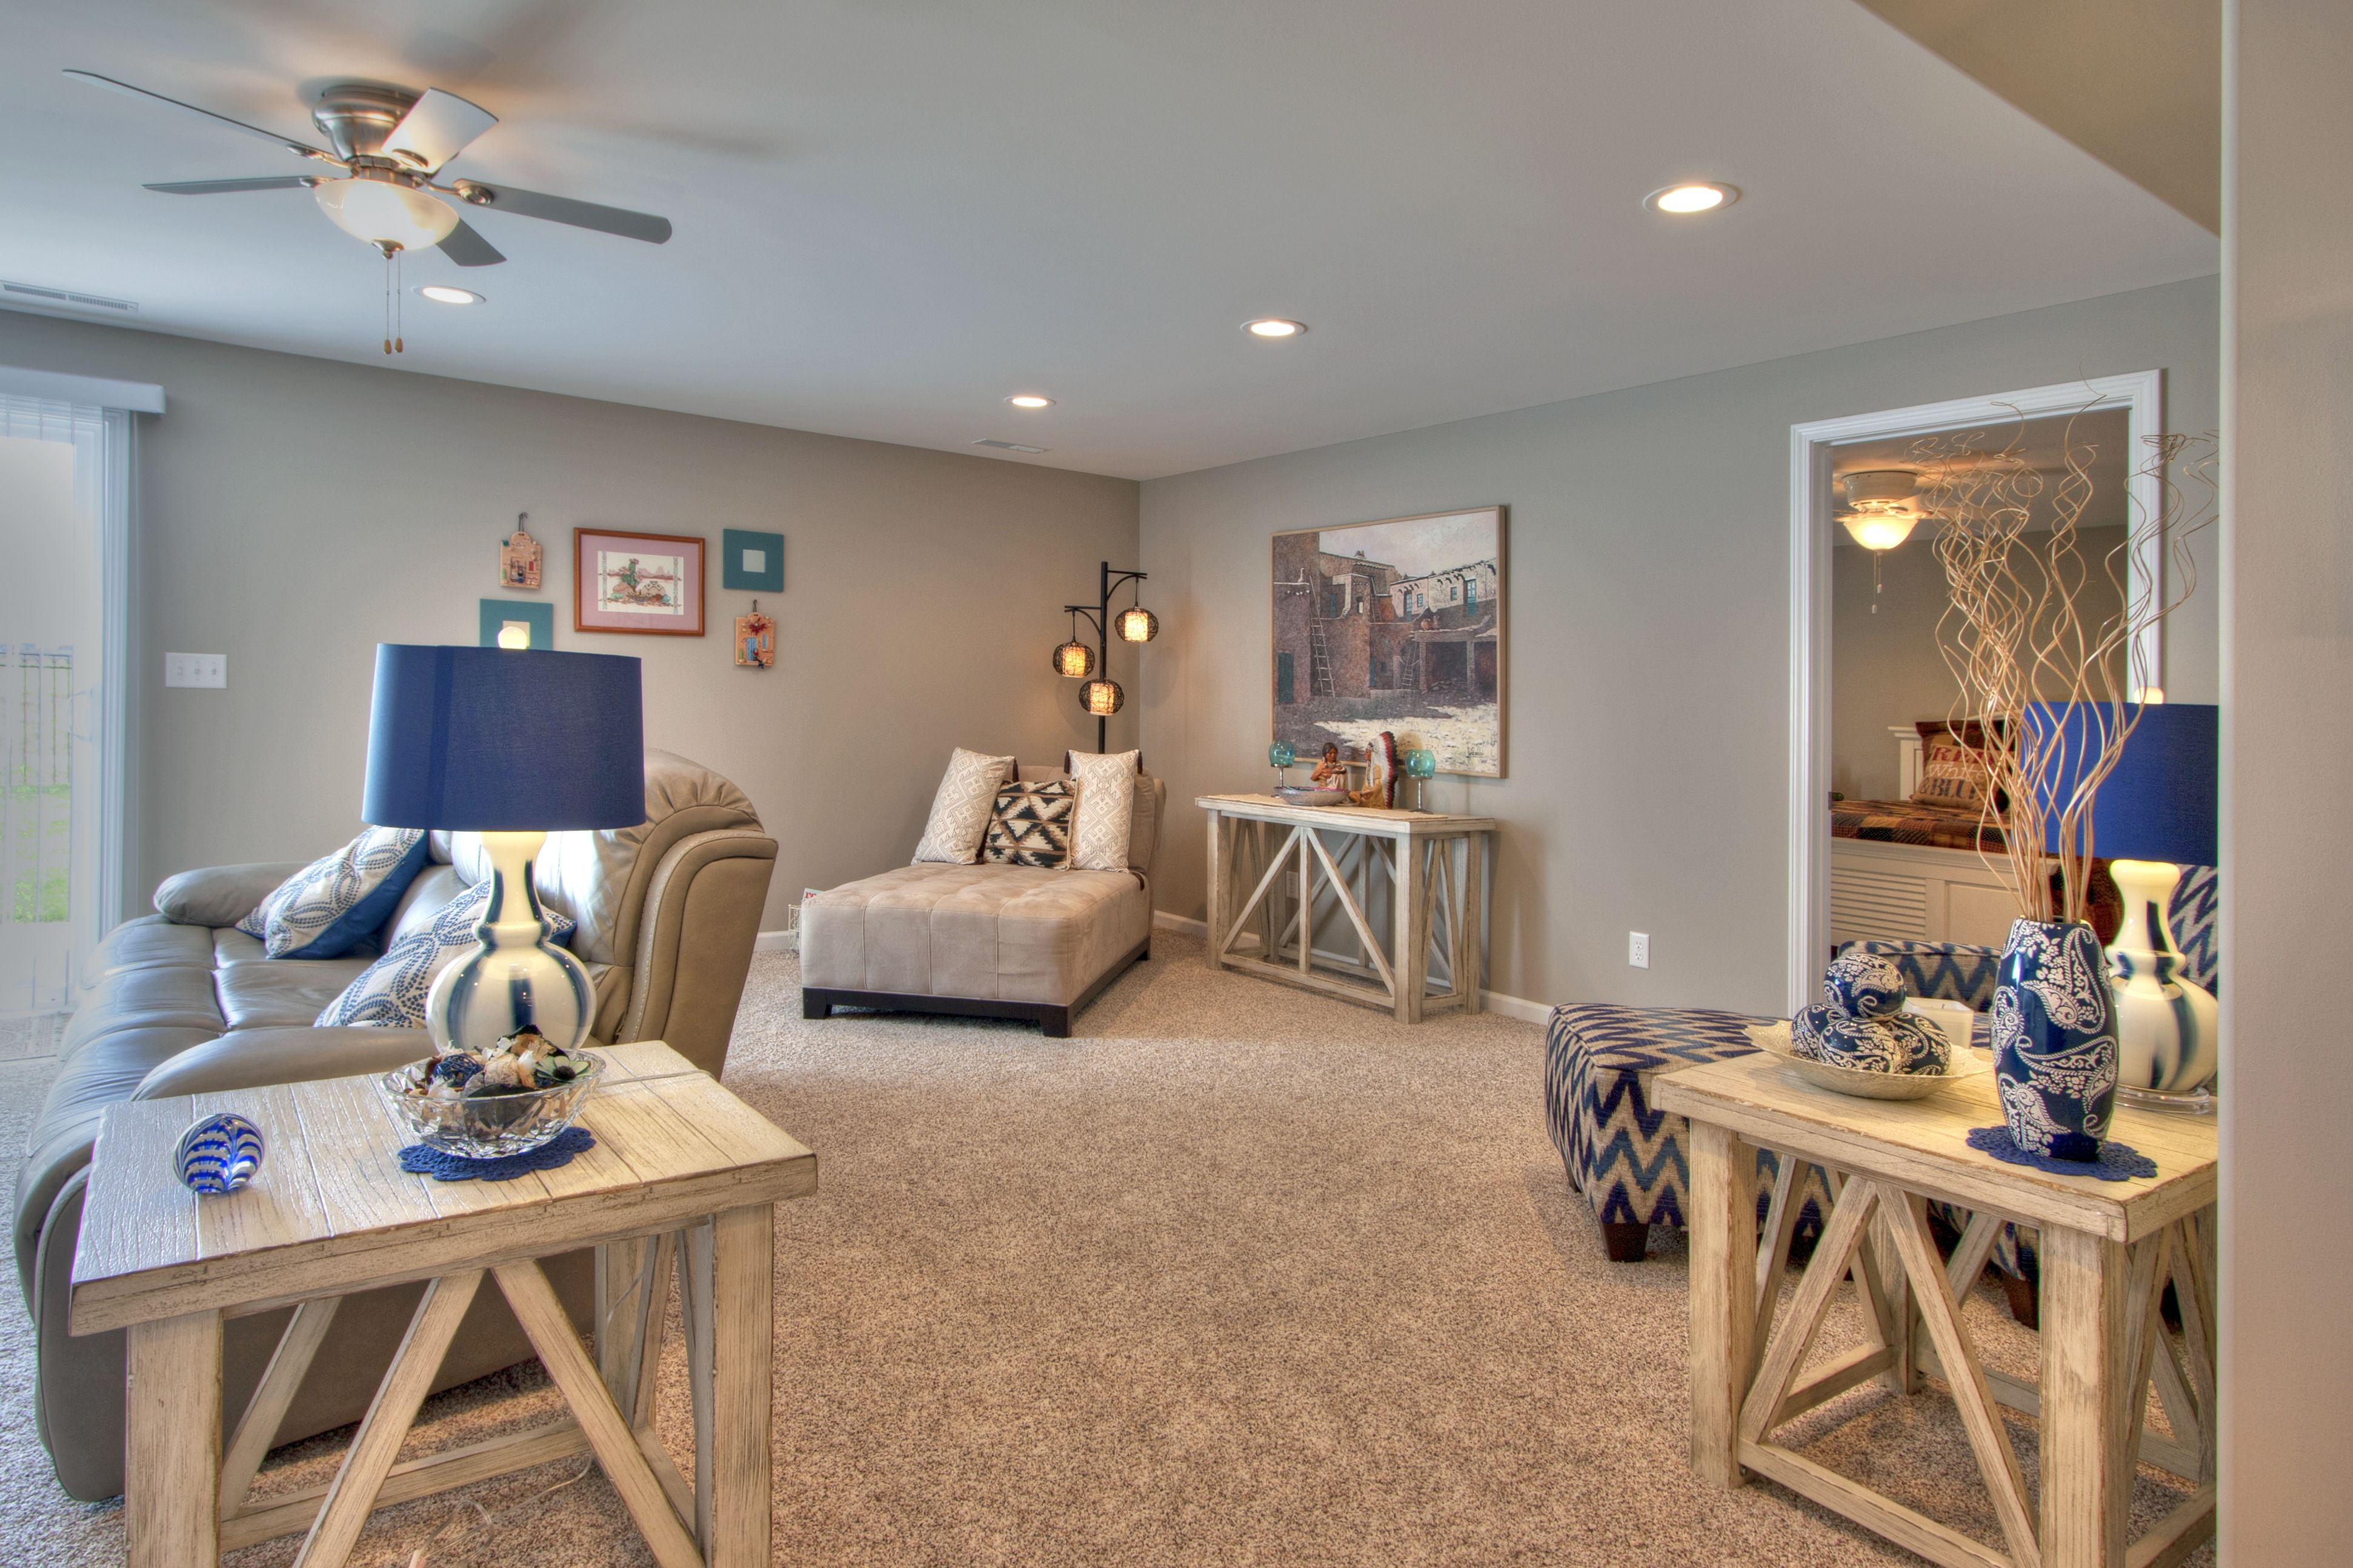 The Finished Basement Family Room Has 3 Separate Seating Areas